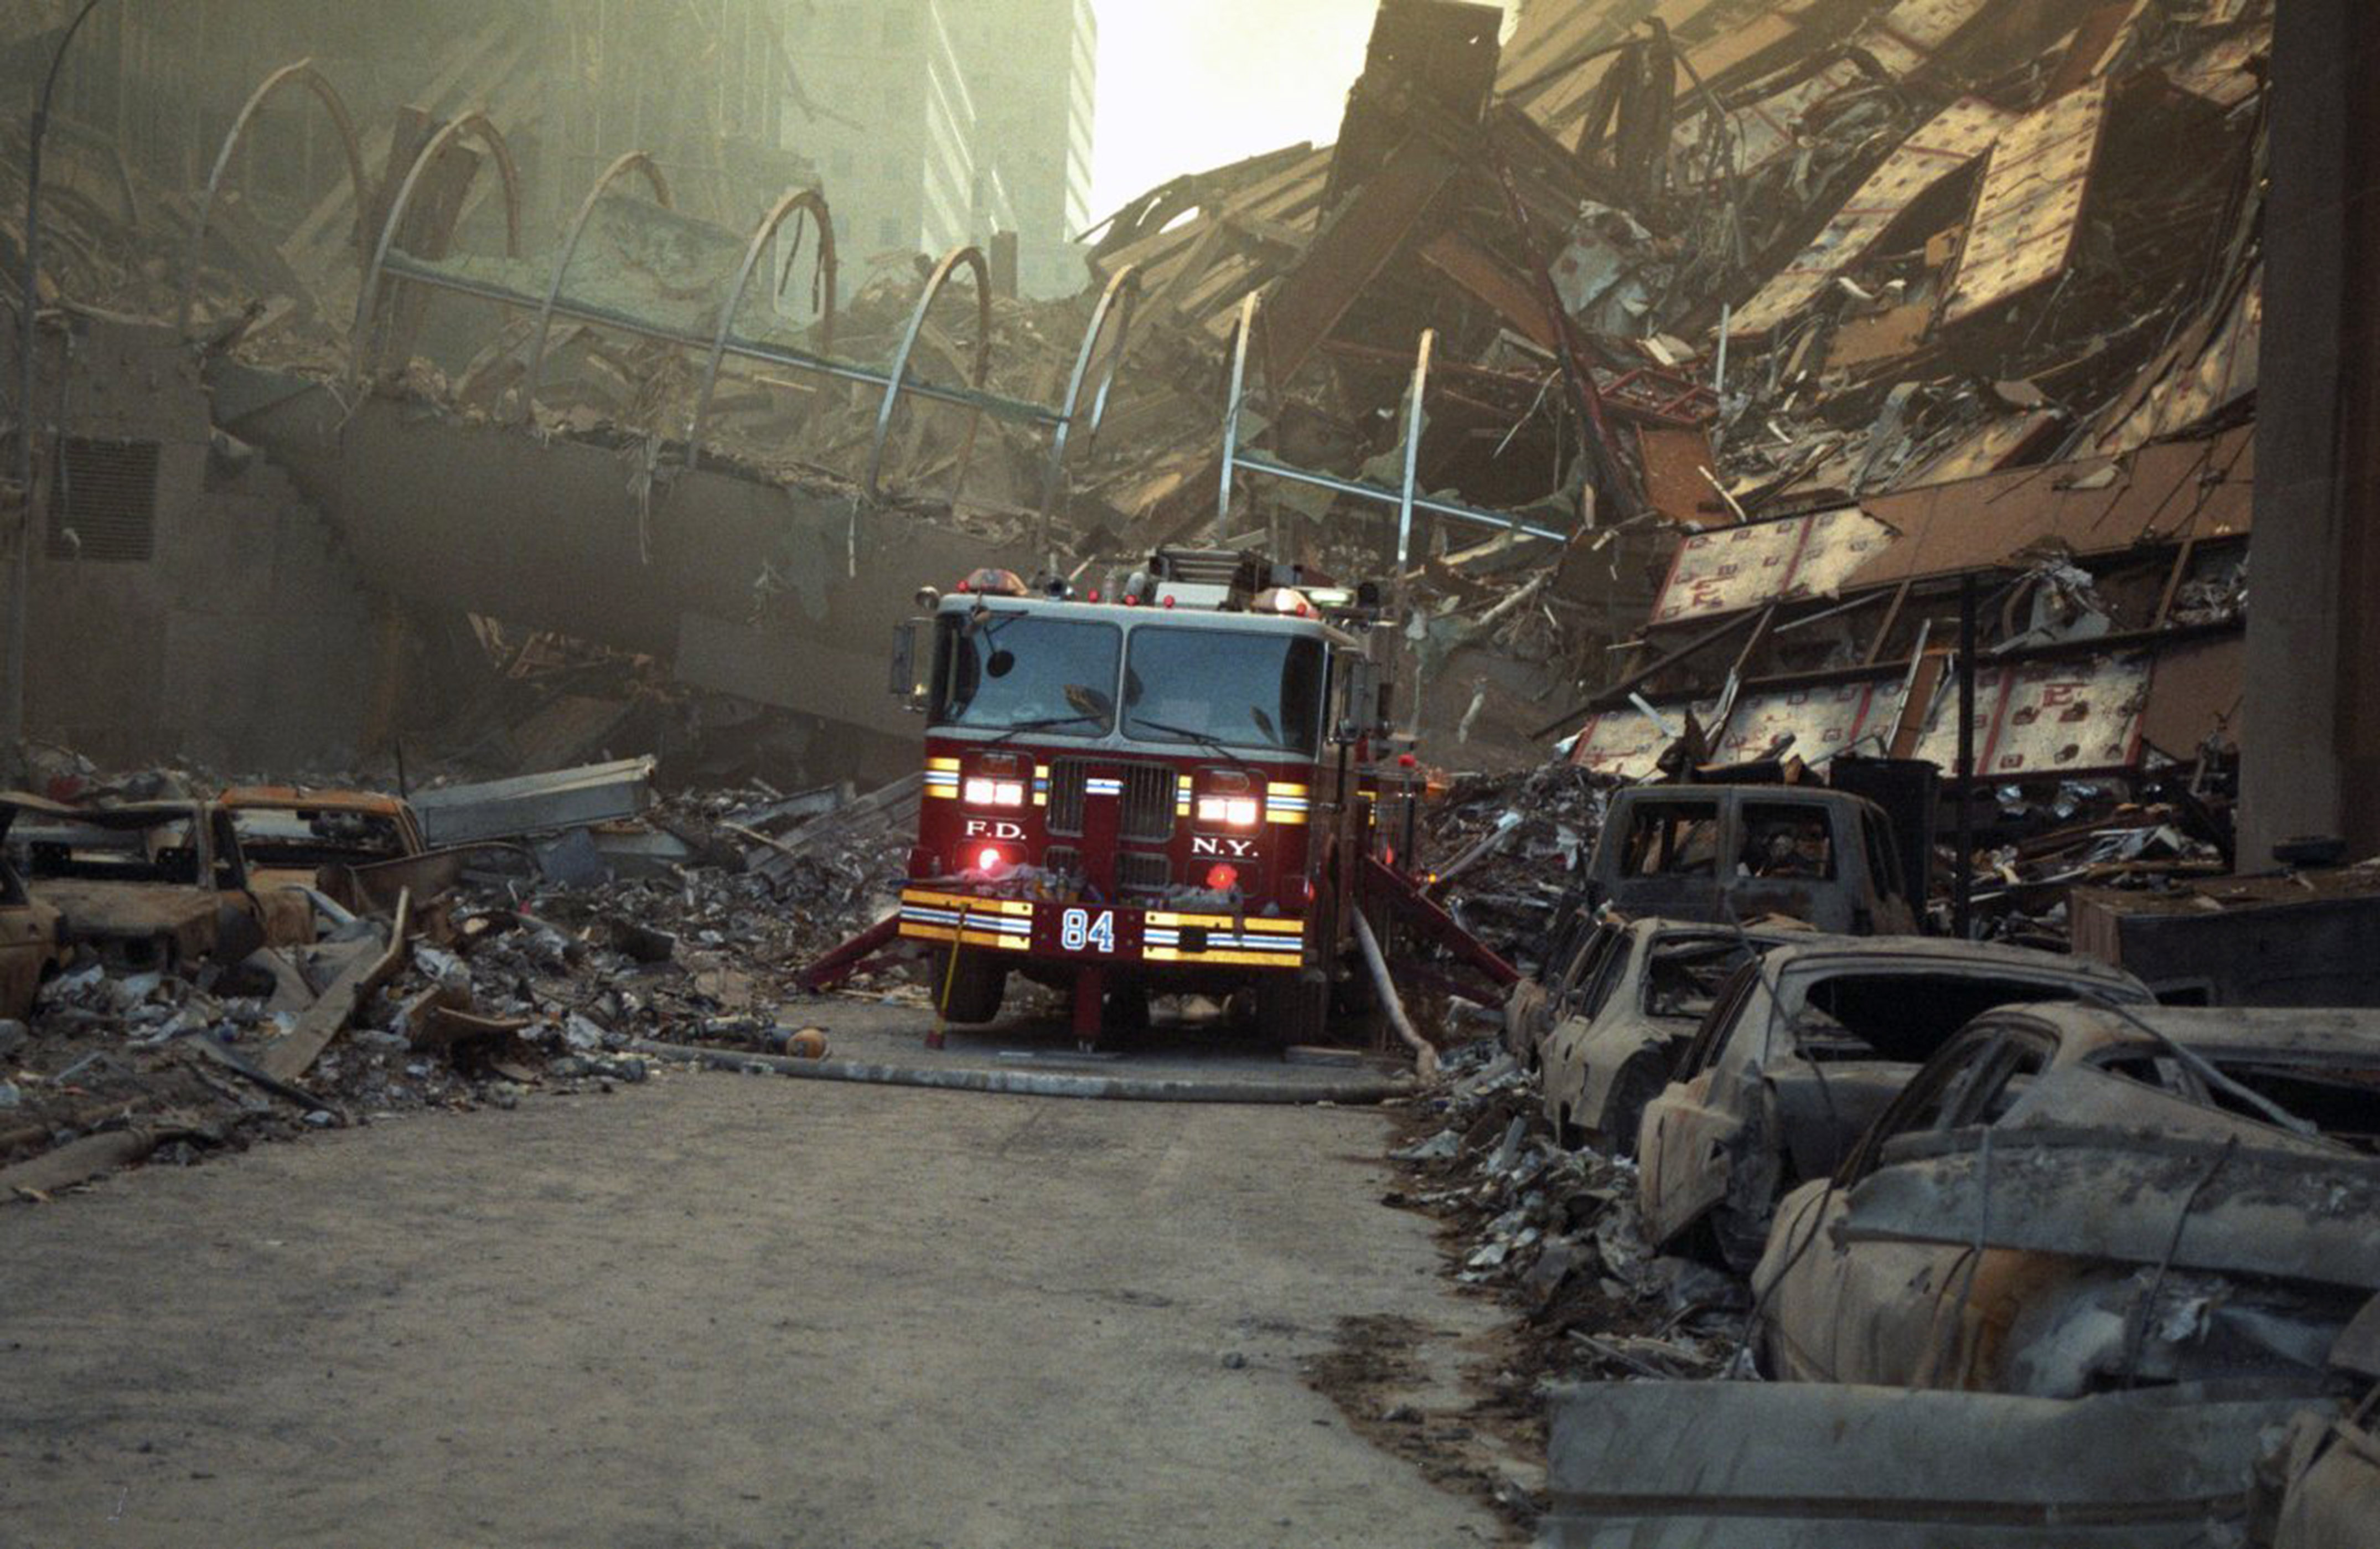 On-Scene Doctor Releases Unseen Photos He Took At 9/11 Site